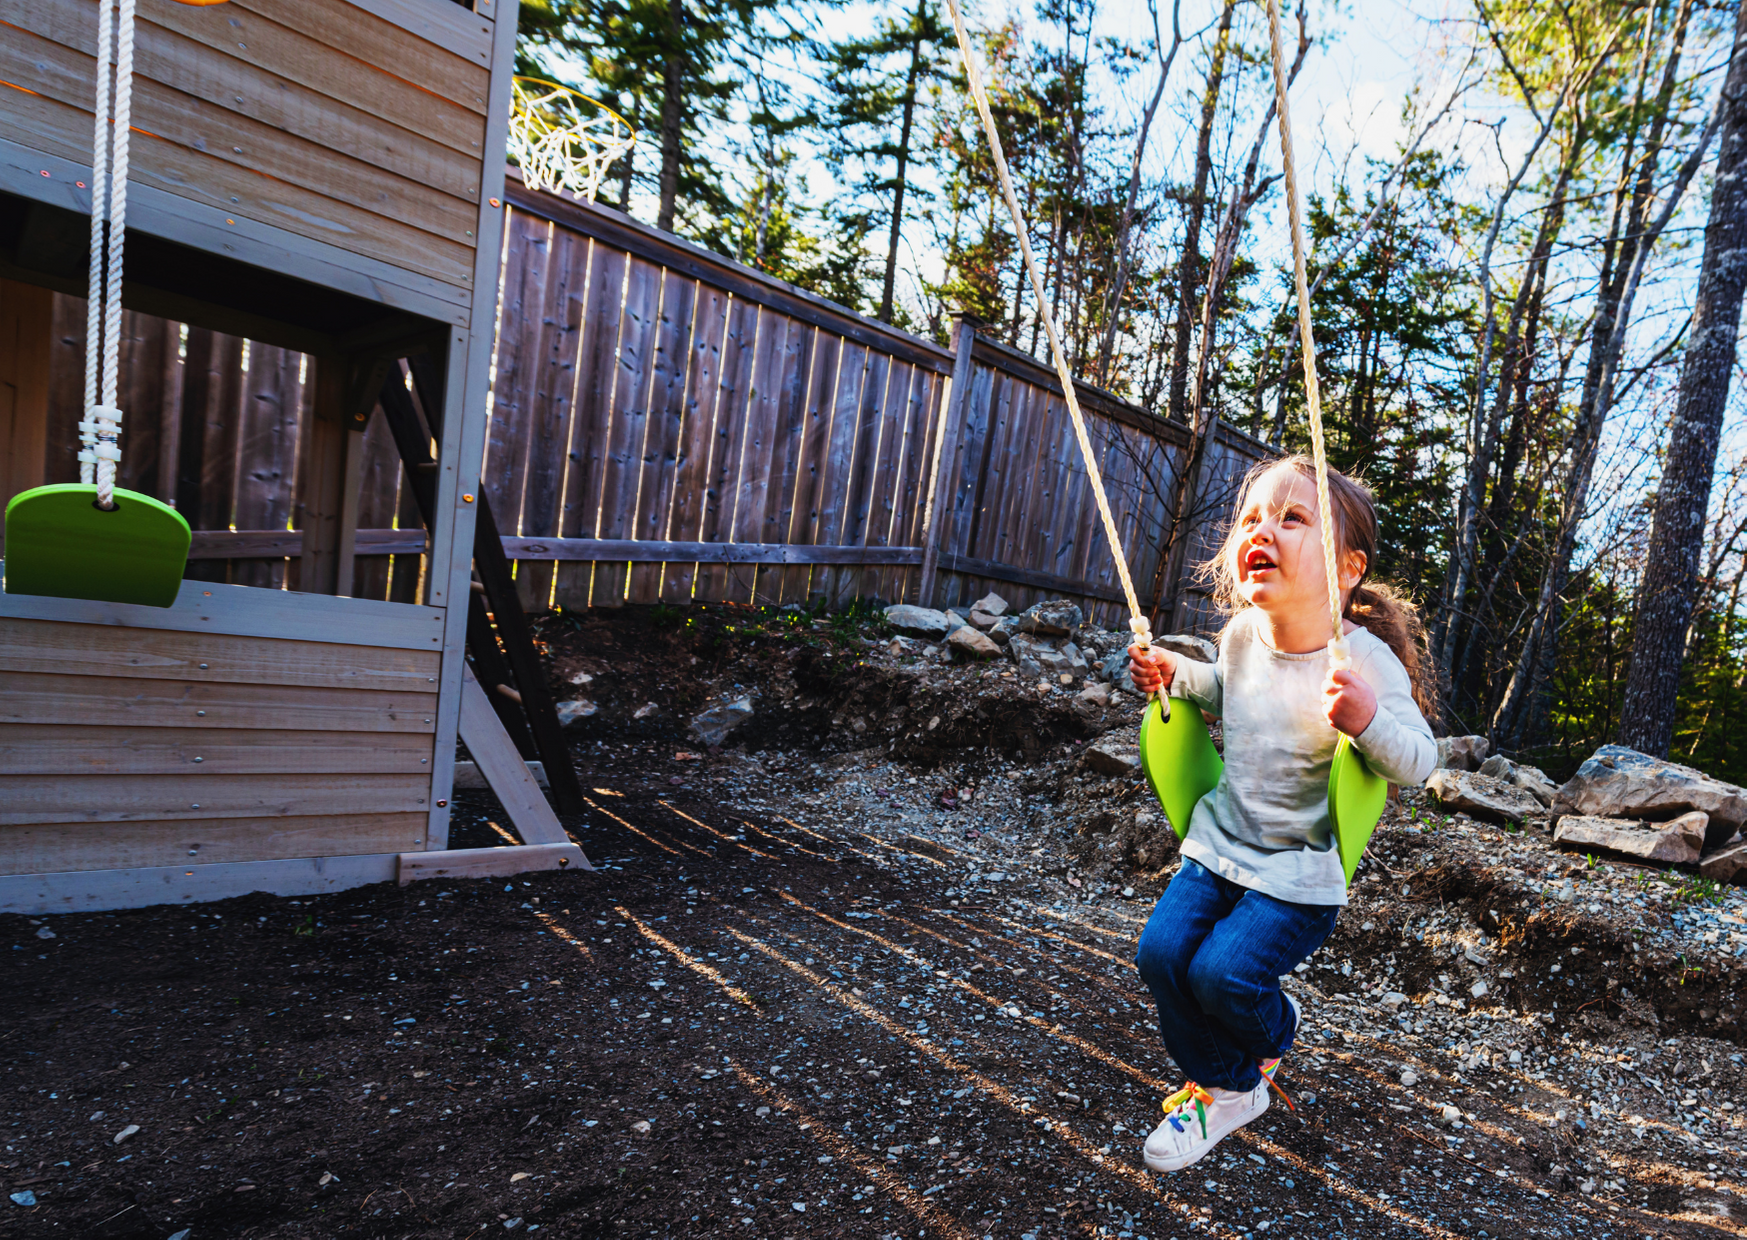 Kids playing in the backyard of The Family Fun Pack: Our Picks for the Top Backyard Playgrounds